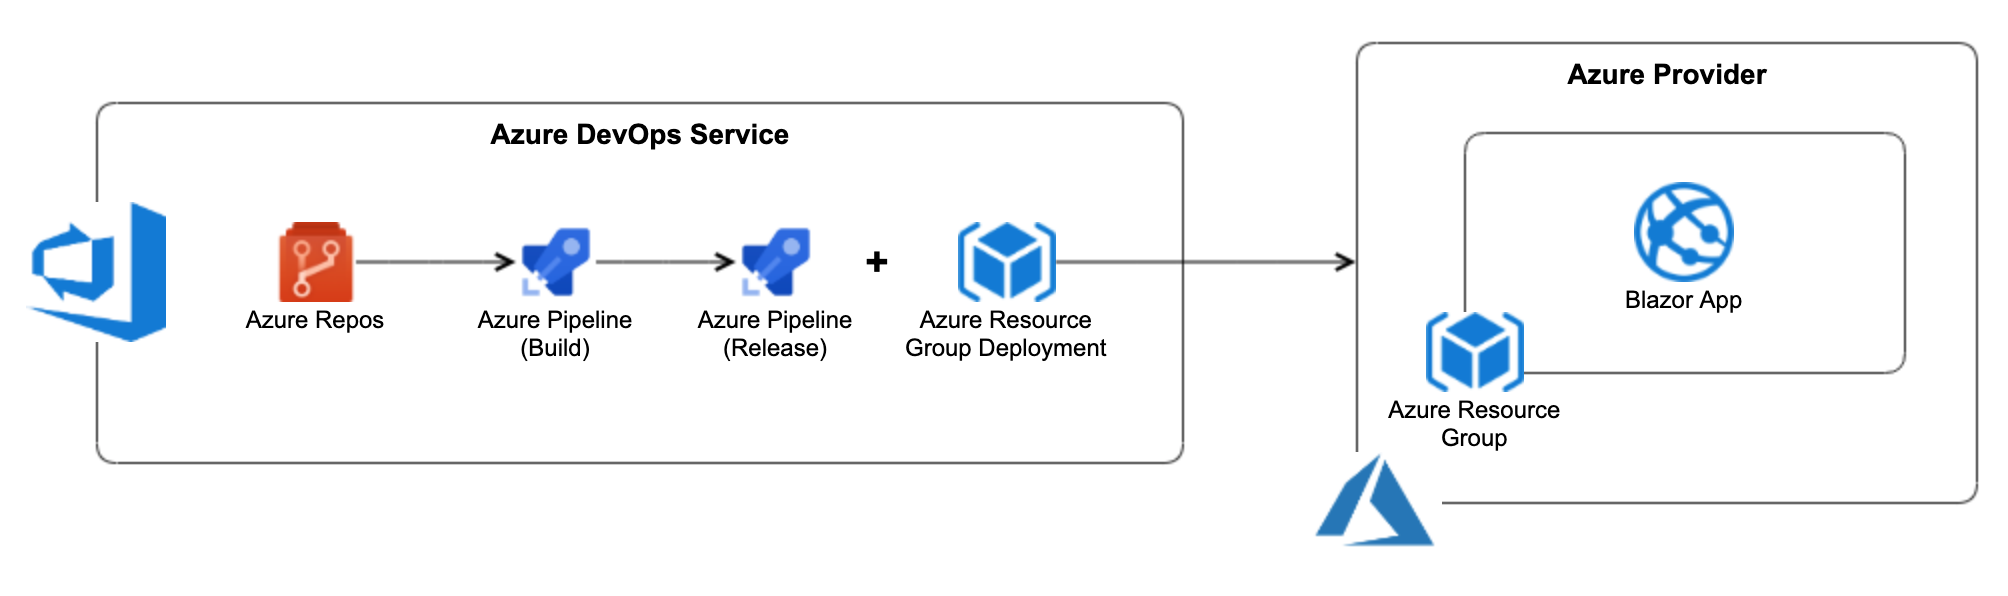 Setting up a CI/CD pipeline in Azure DevOps for Blazor and